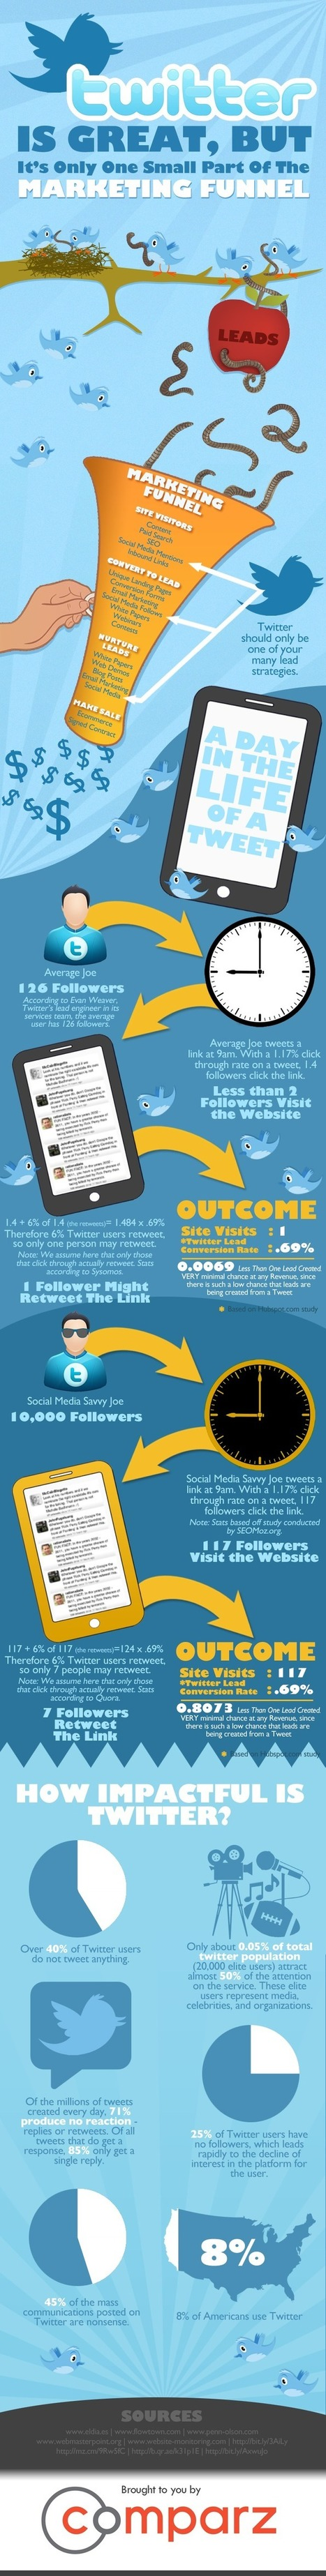 Infographic--Twitter Should Only be a Small Piece of Your Marketing Efforts | InformationCommunication (ICT) | Scoop.it